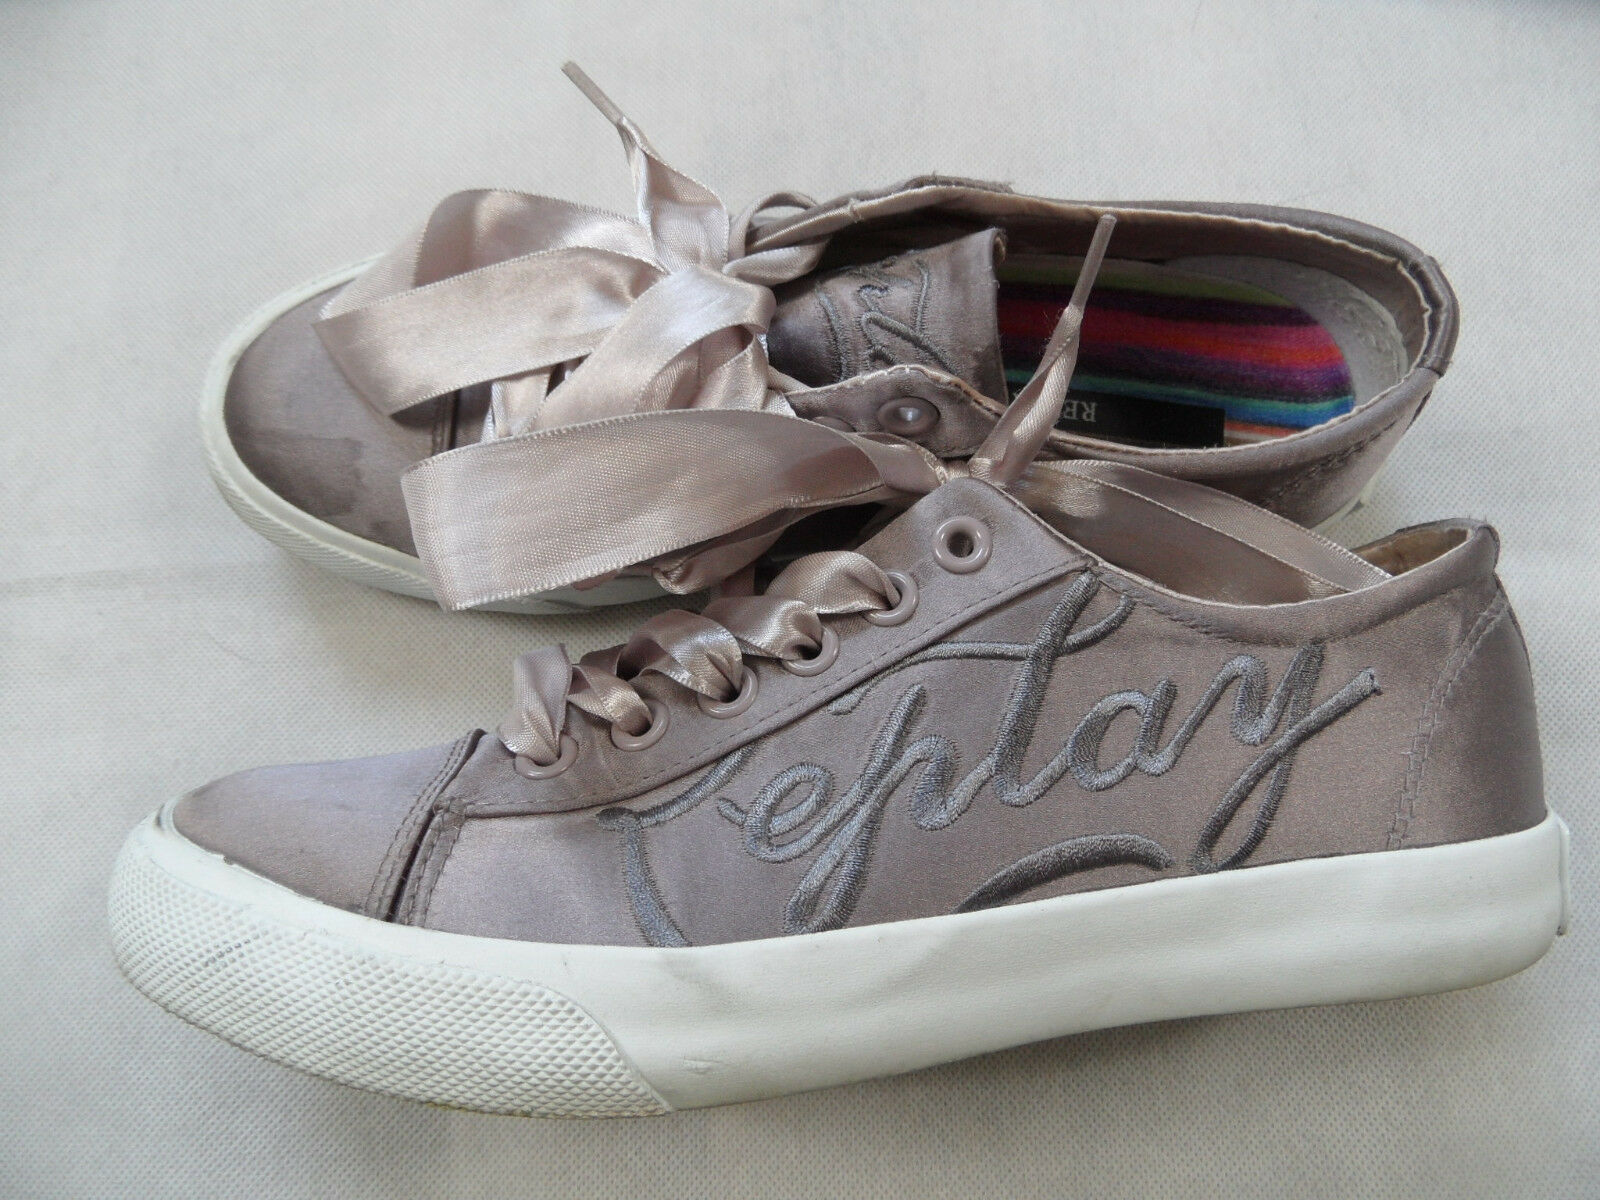 REPLAY schöne Sneakers in Satinopik mit Schleifenband pink Gr. 38 TOP WiM